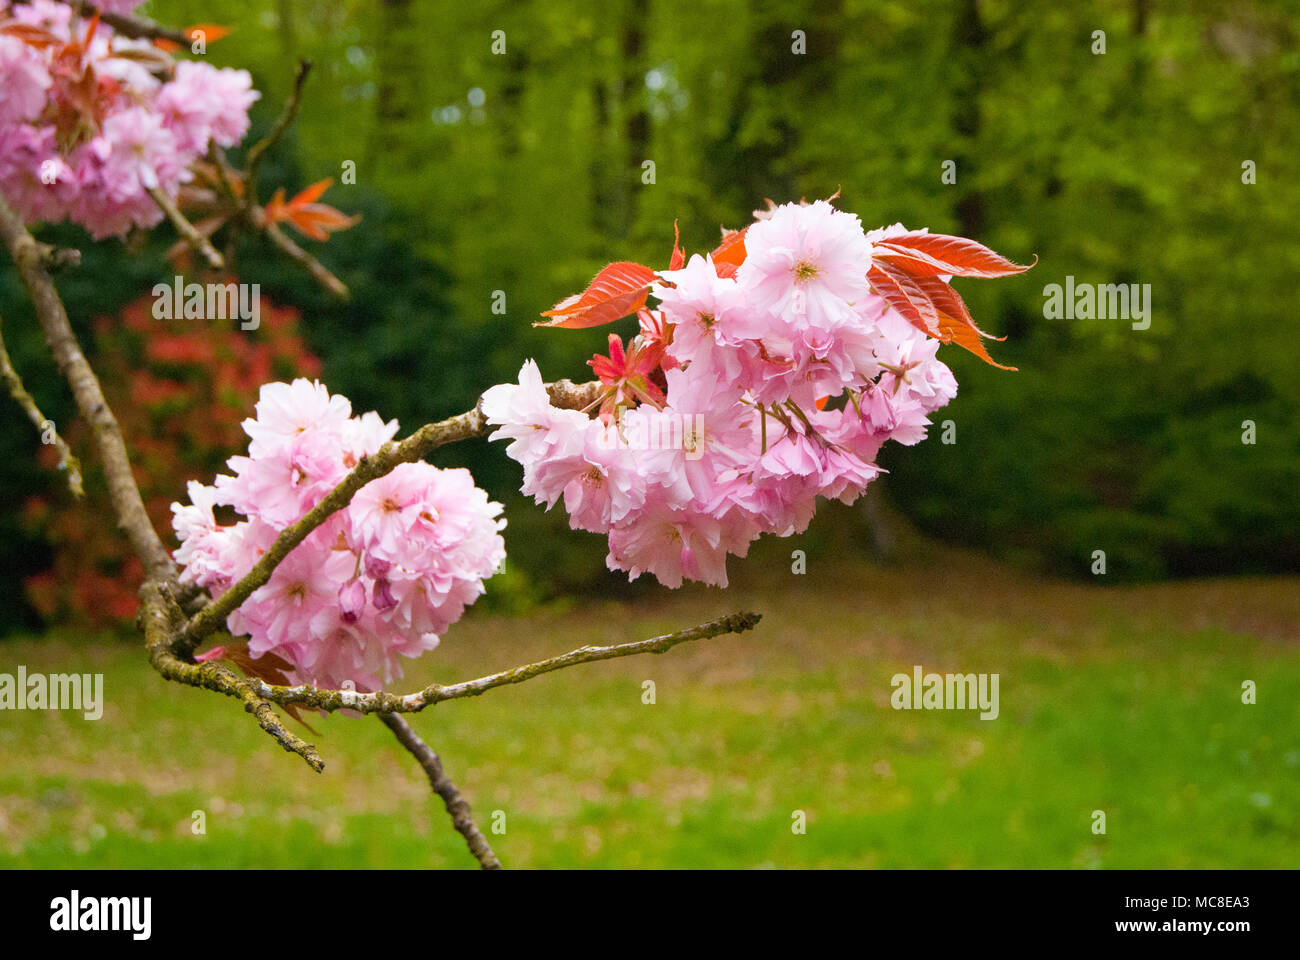 Pink Flowering Cherry Tree On An Old Flowering Cherry Tree In An